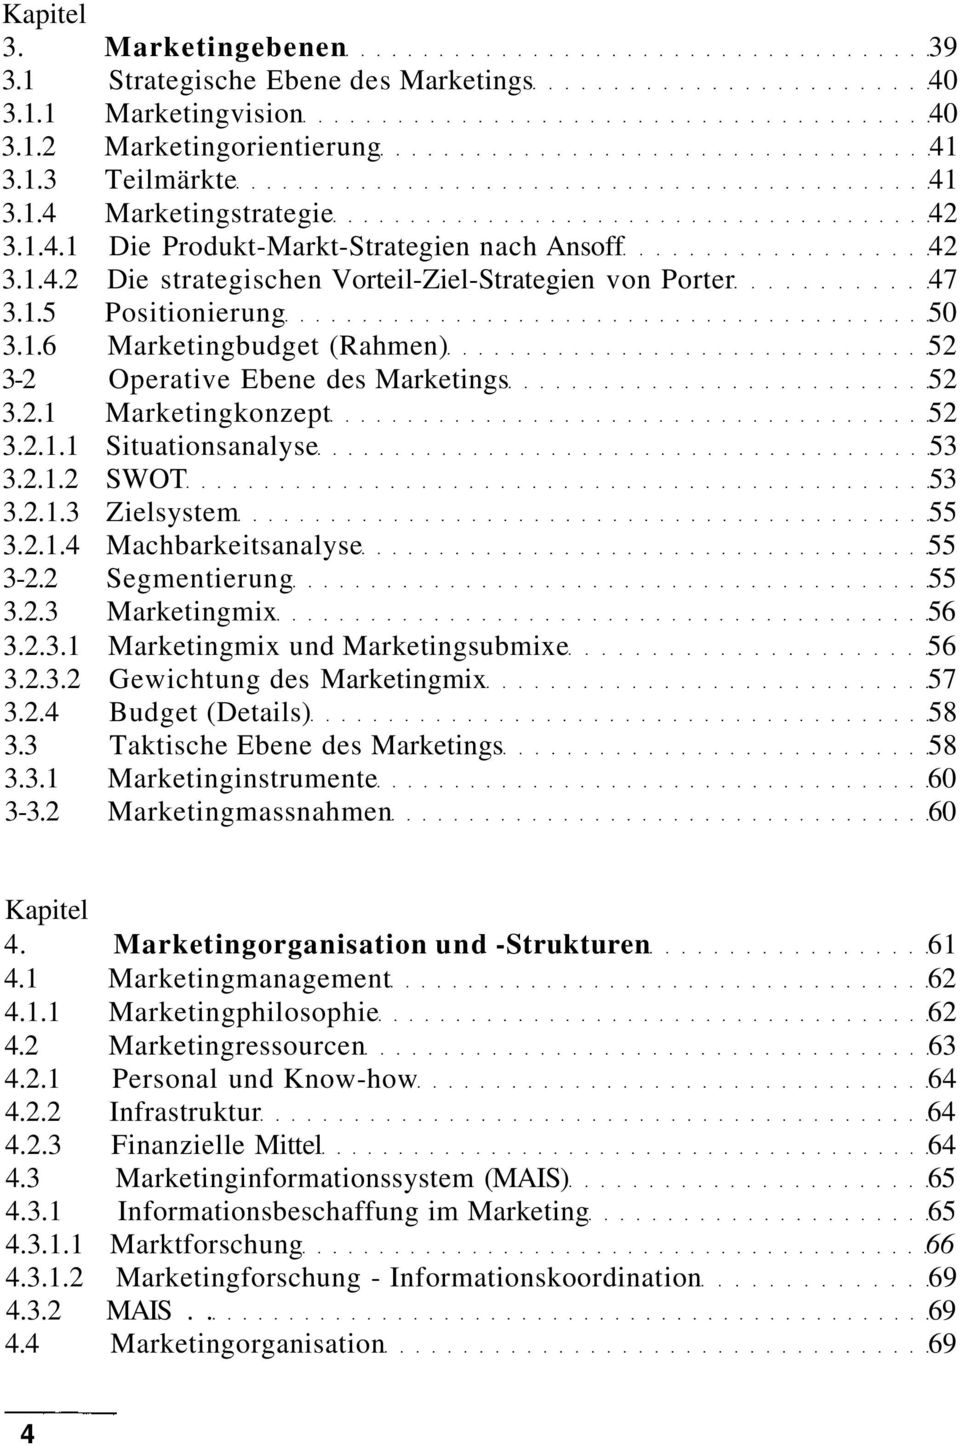 2.1.2 SWOT 53 3.2.1.3 Zielsystem 55 3.2.1.4 Machbarkeitsanalyse 55 3-2.2 Segmentierung 55 3.2.3 Marketingmix 56 3.2.3.1 Marketingmix und Marketingsubmixe 56 3.2.3.2 Gewichtung des Marketingmix 57 3.2.4 Budget (Details) 58 3.